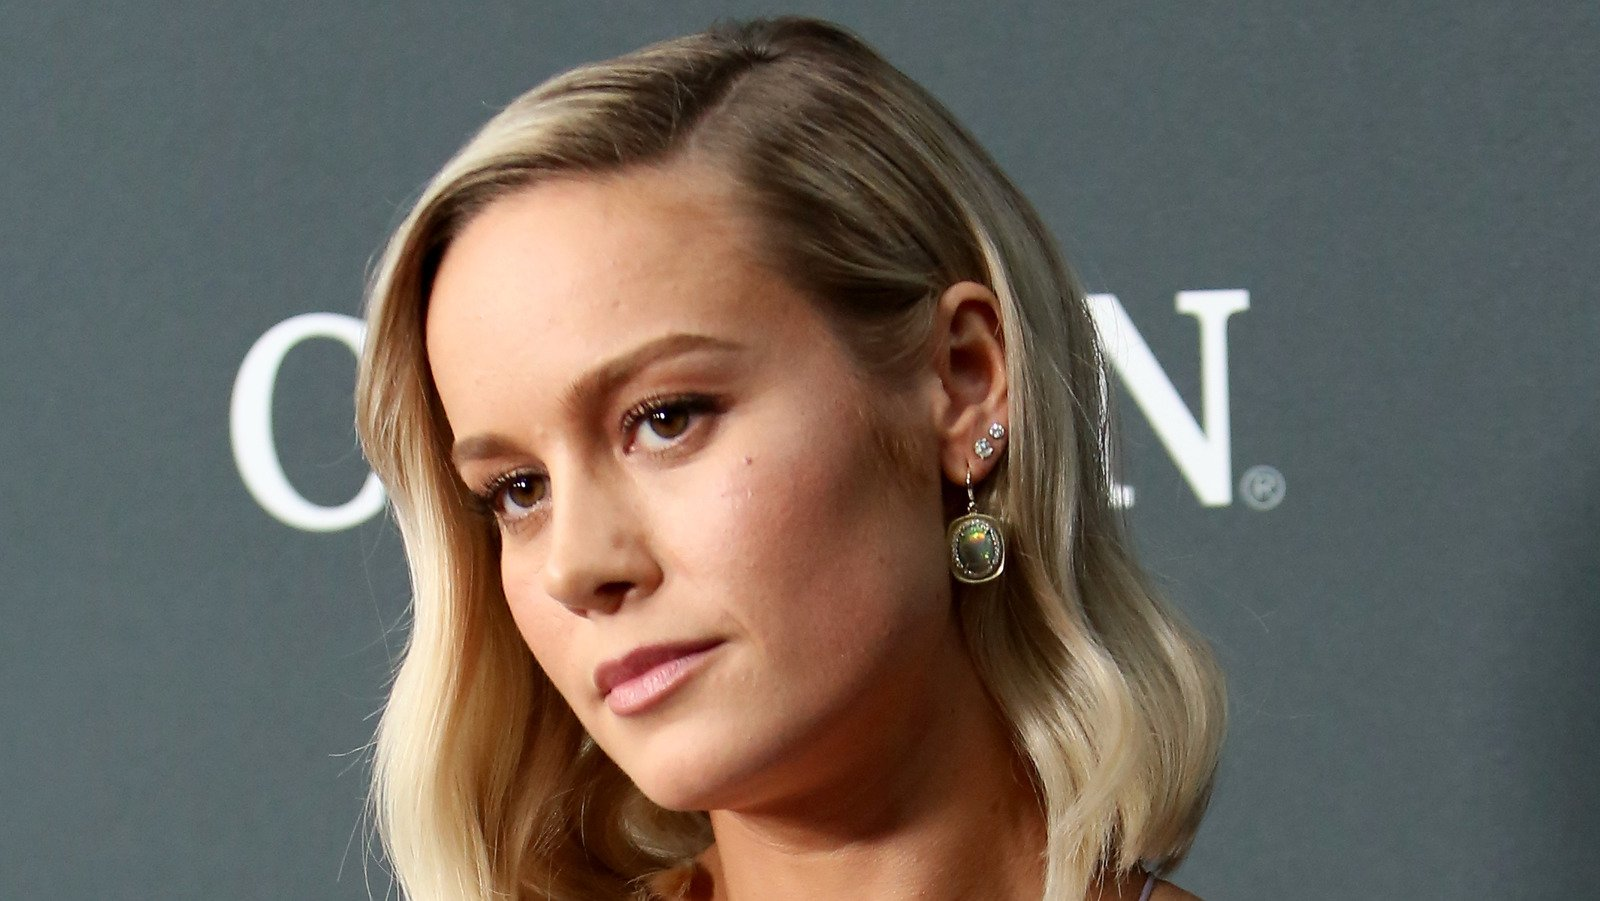 Brie Larson Is Completely Unrecognizable At 15 Years Old